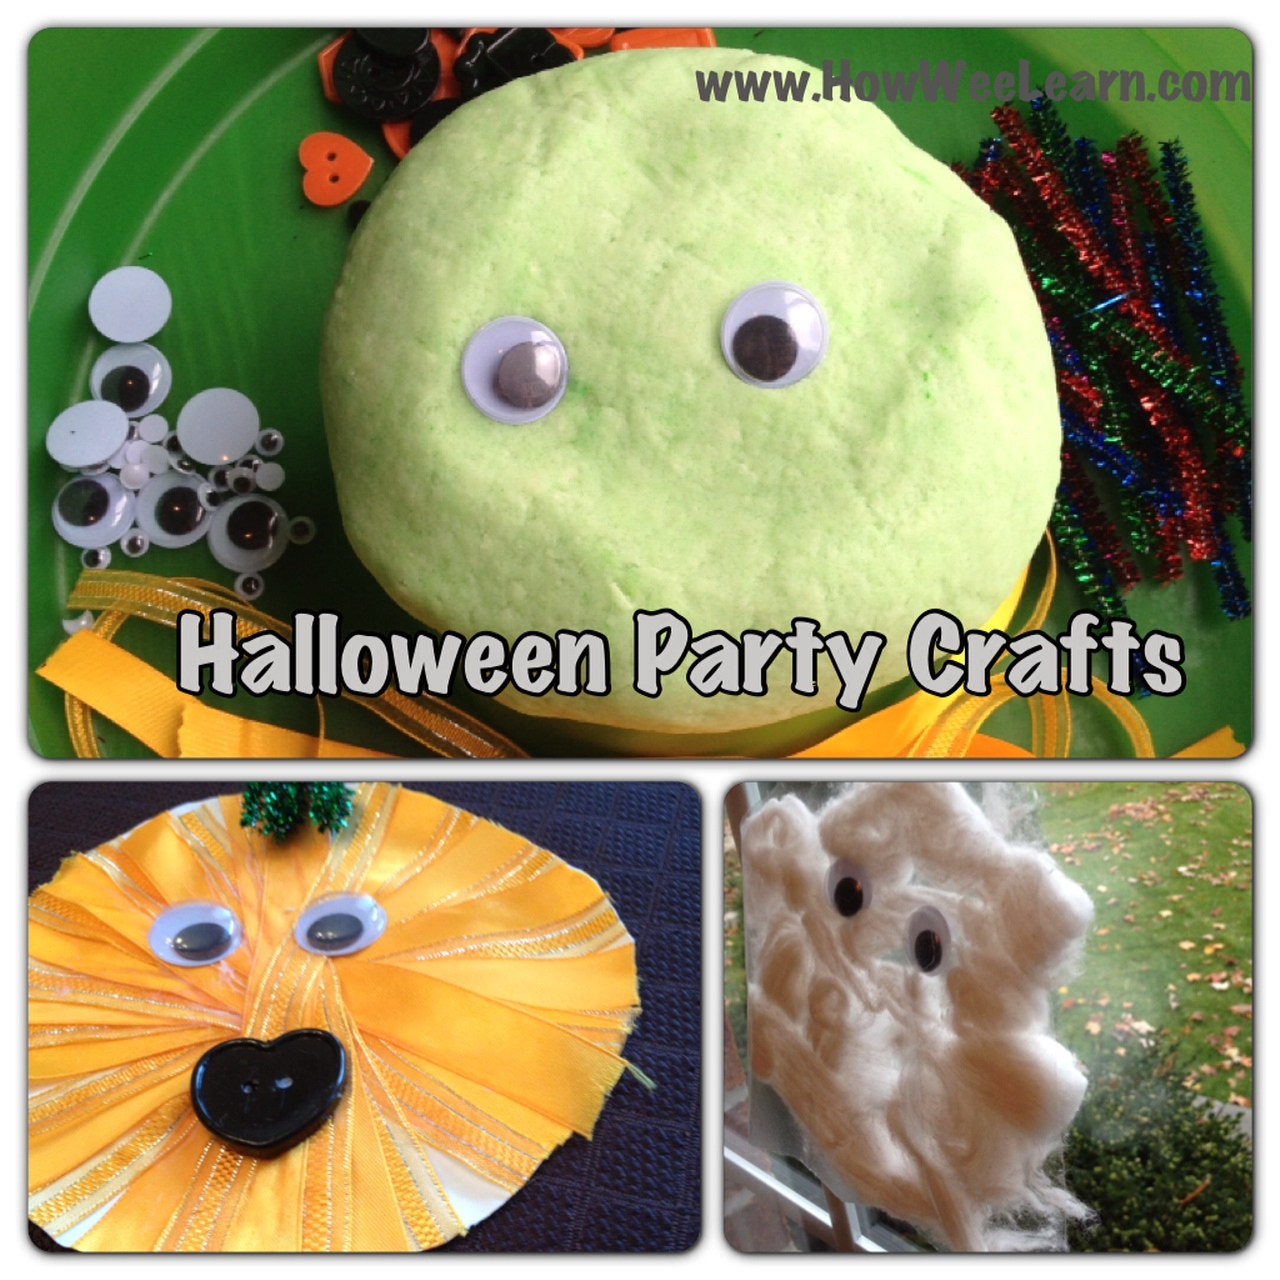 Halloween party crafts for kids fun for all ages how for Fun crafts for all ages